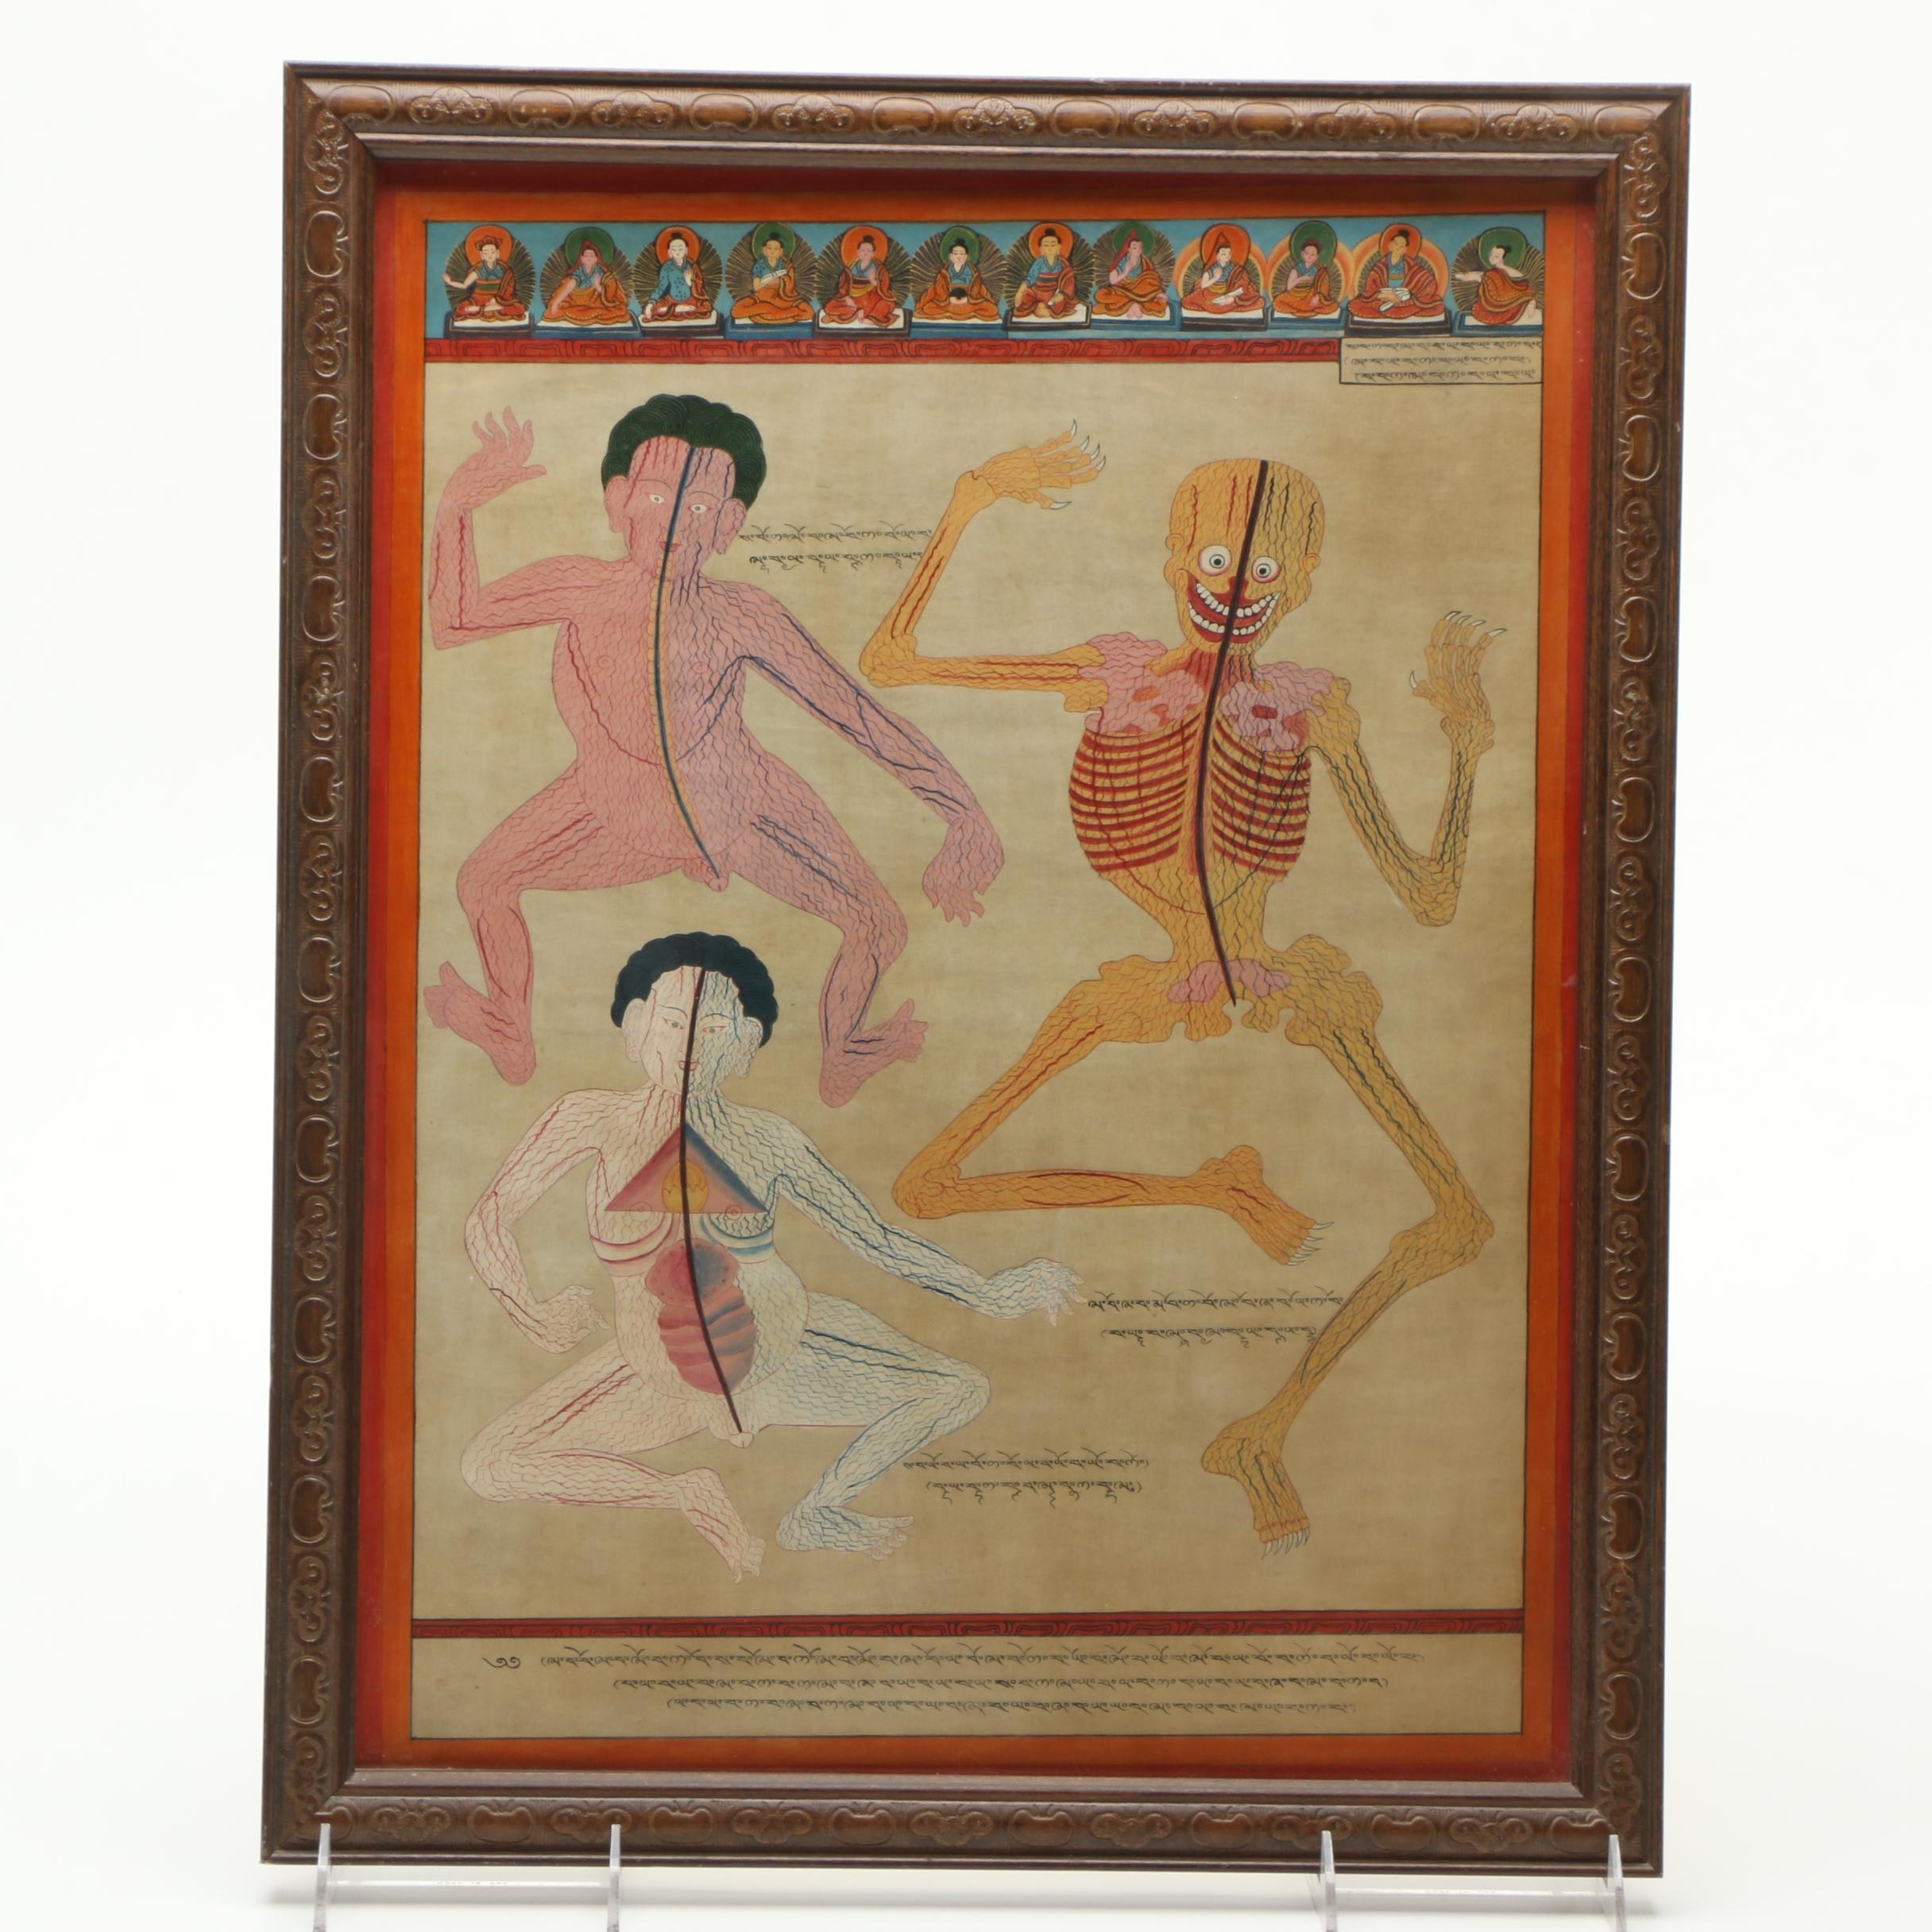 Tibetan Medical Painting on Canvas